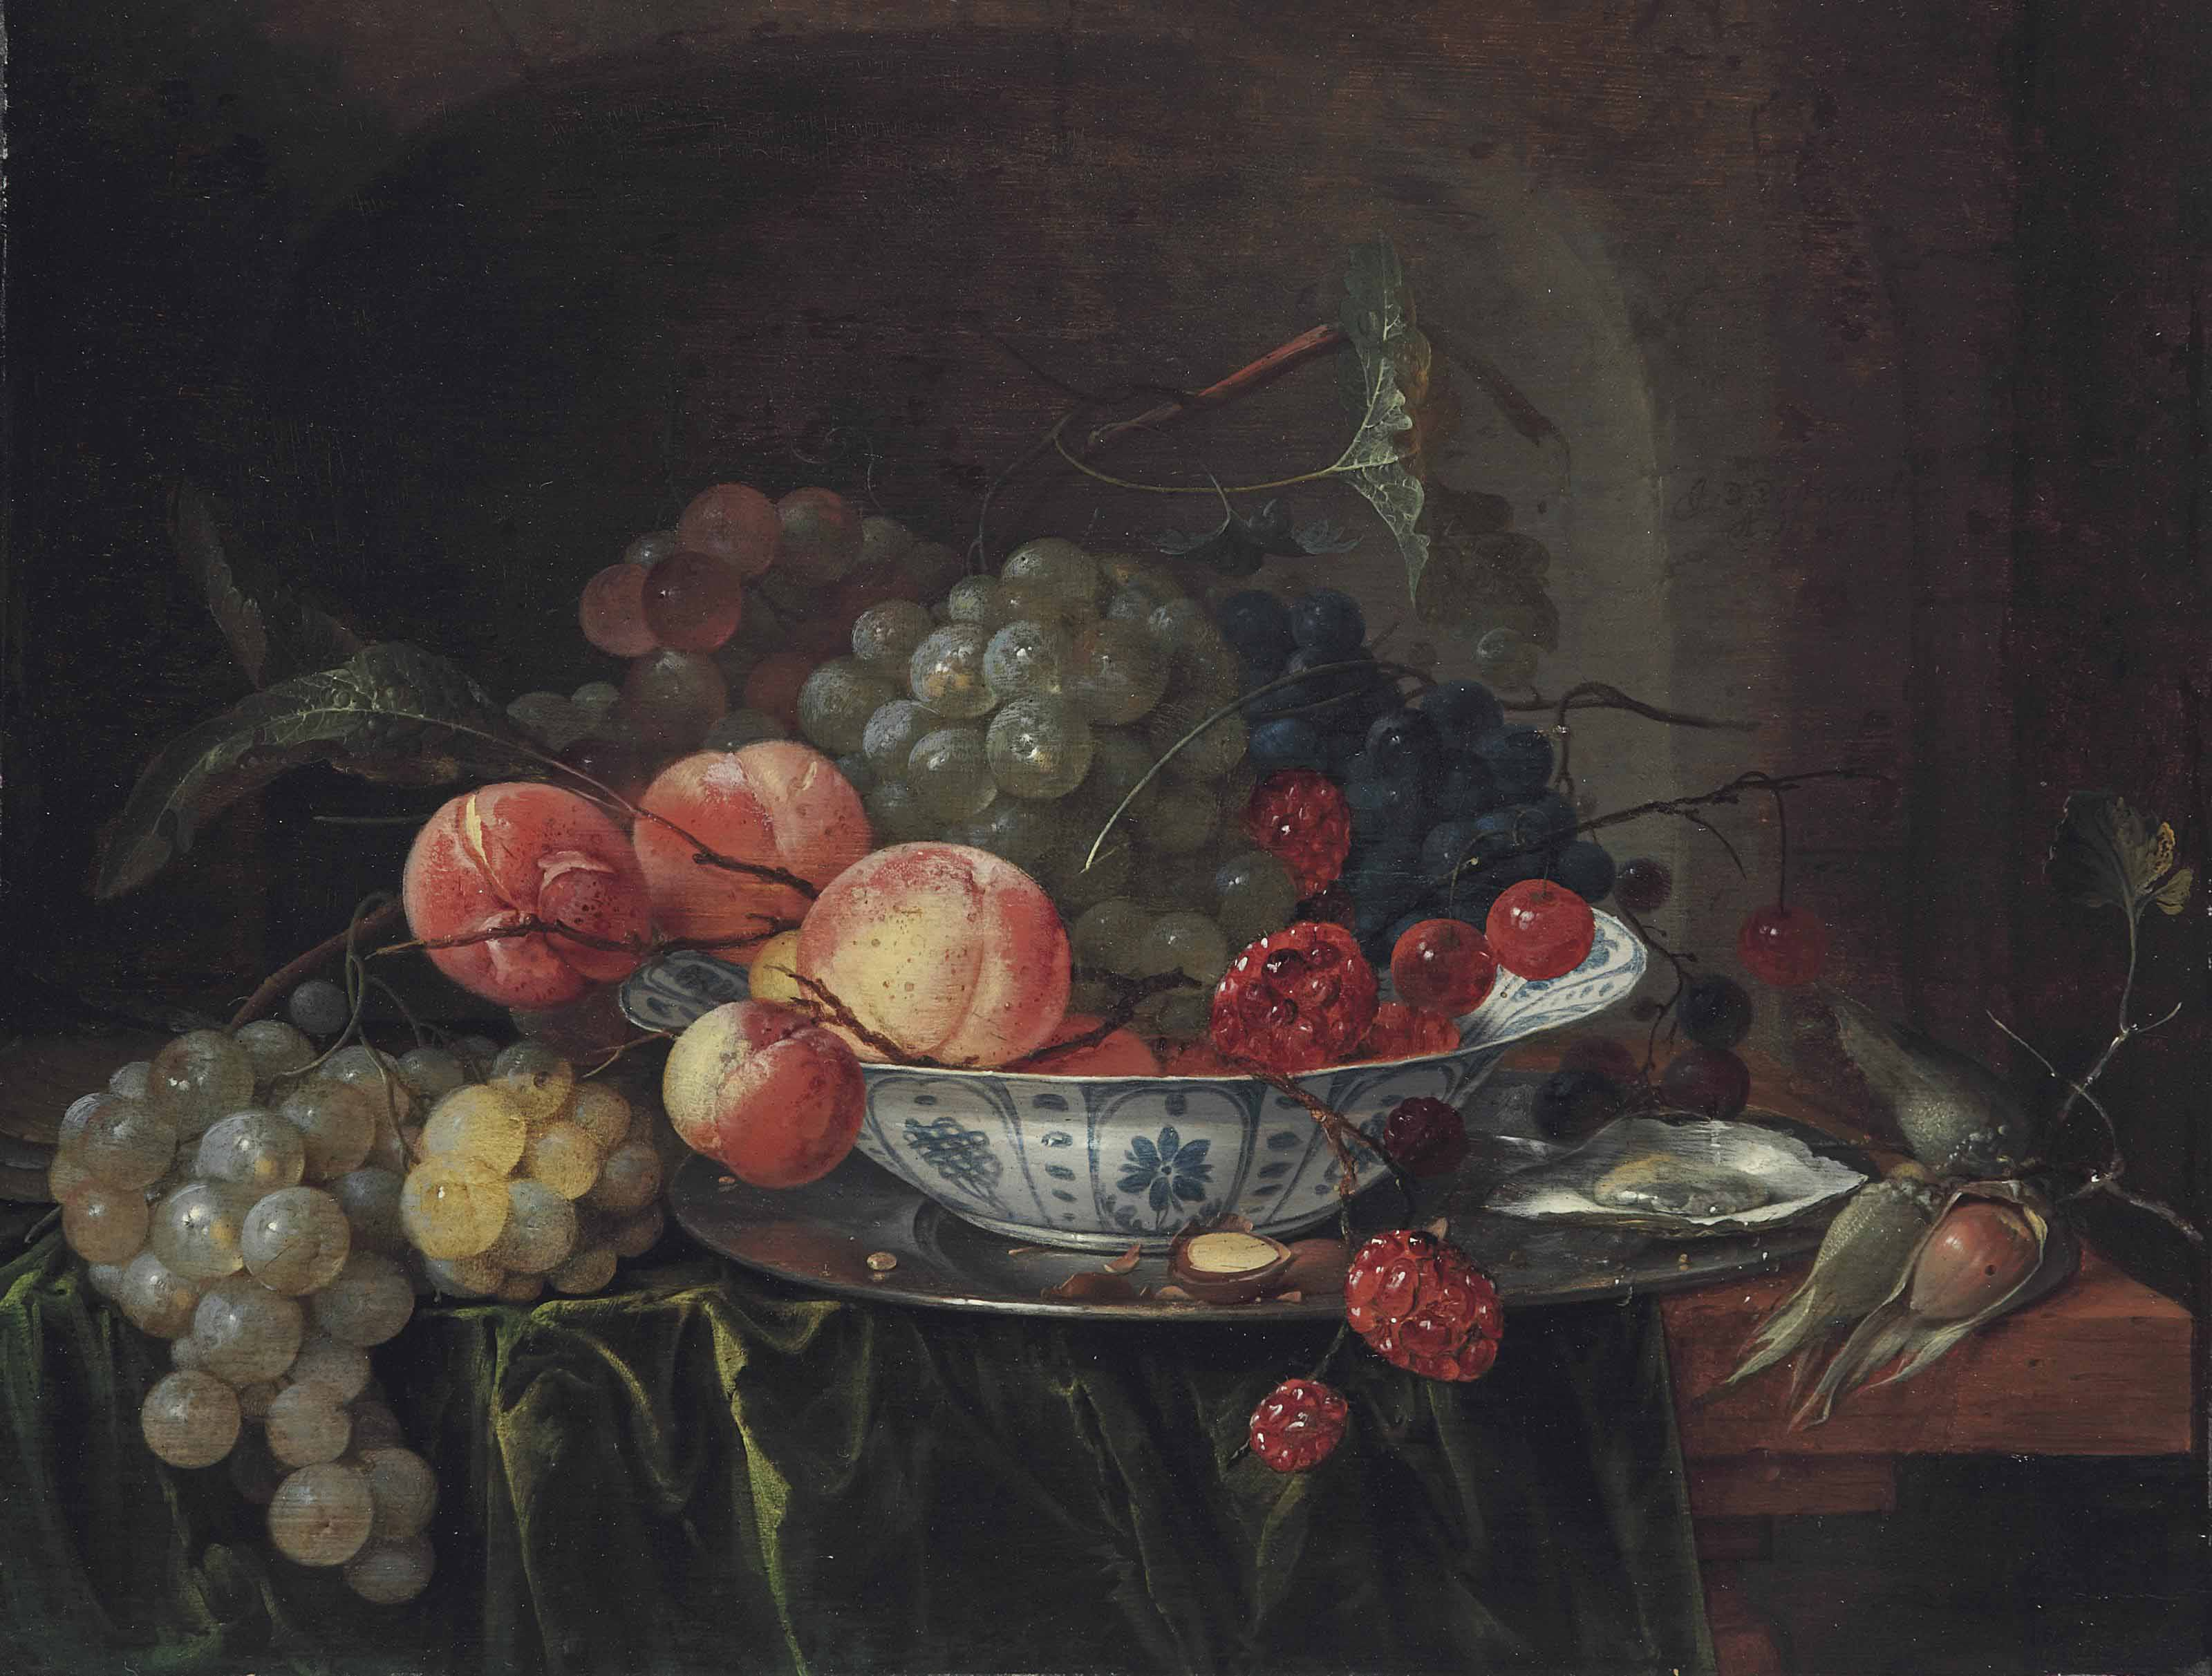 Grapes and apples in a Wan-li dish with oysters on a stone ledge